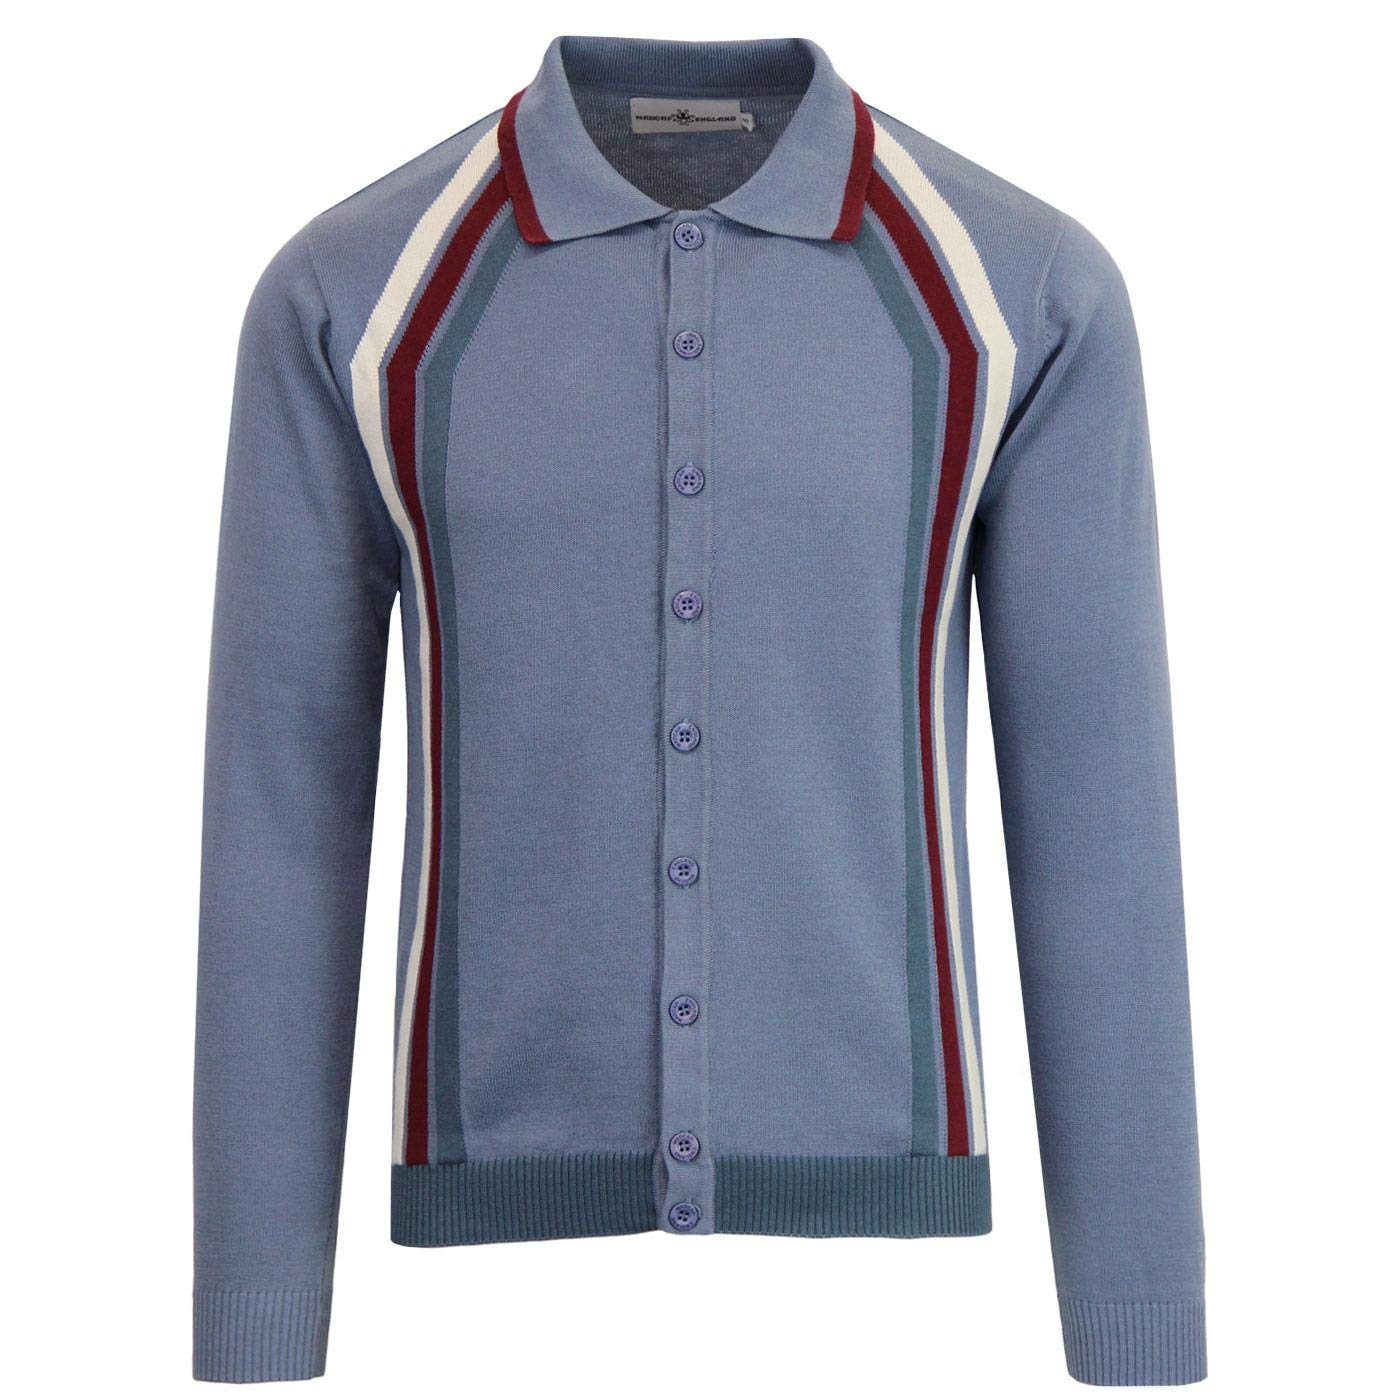 1960s – 70s Mens Shirts- Disco Shirts, Hippie Shirts Madcap England Blast Mens Retro 50s 60s 70s Mod Knitted Polo Cardigan £39.99 AT vintagedancer.com